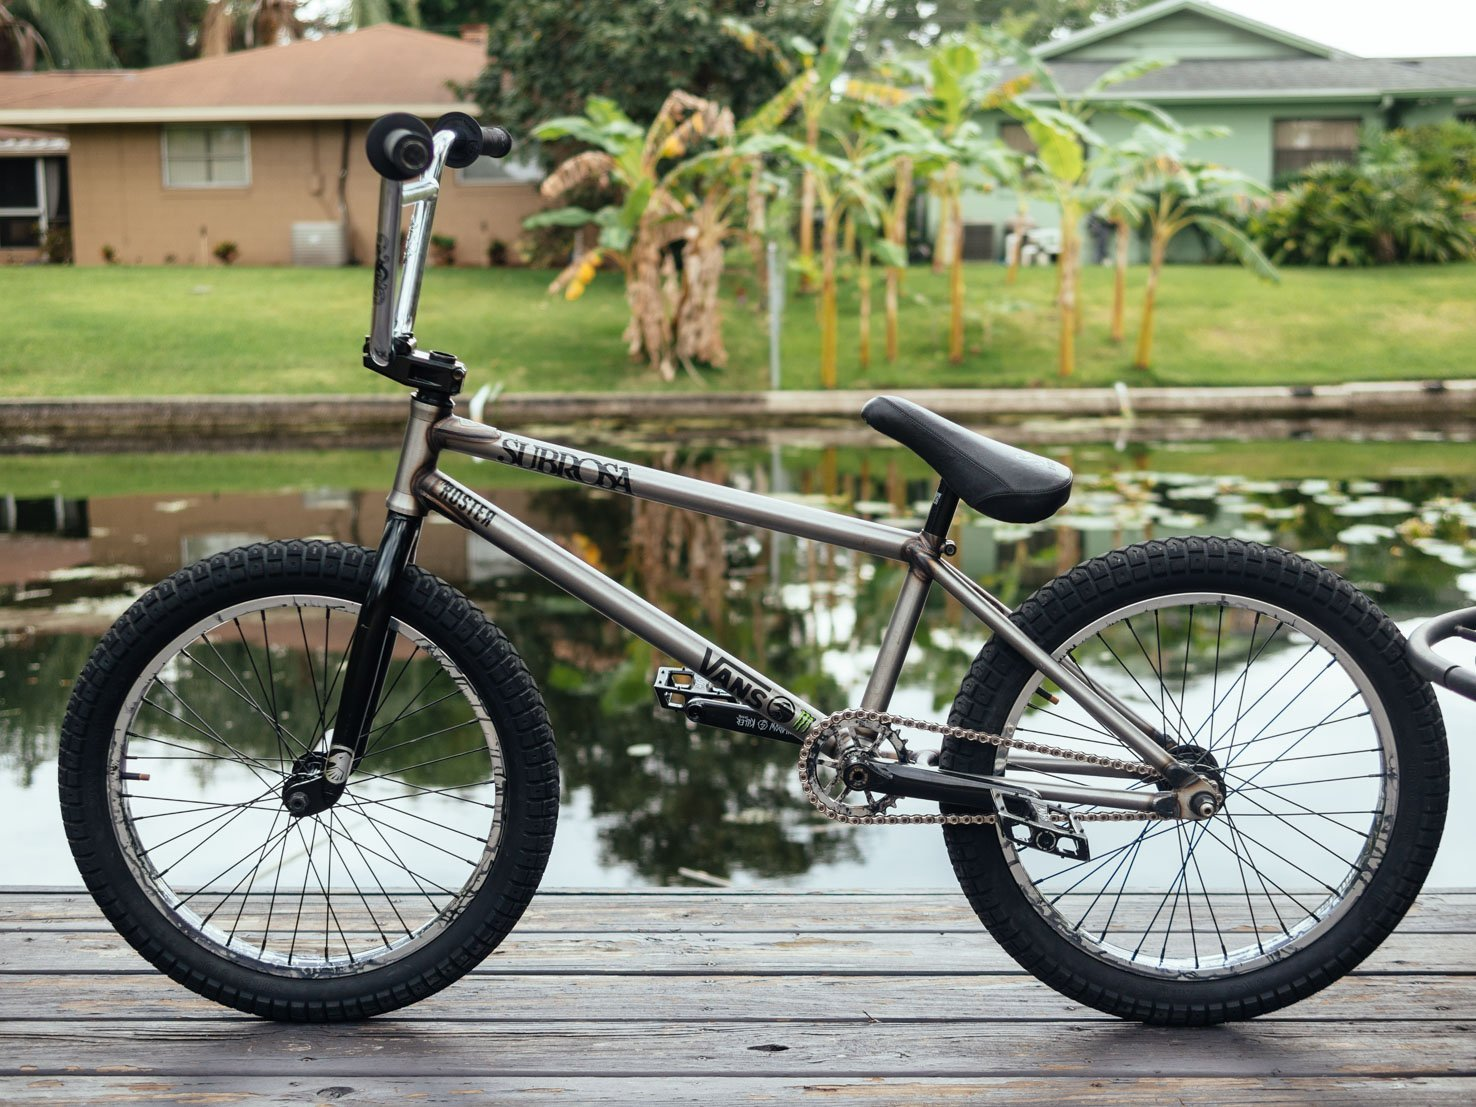 Kevin Kalkoff - Bike Check